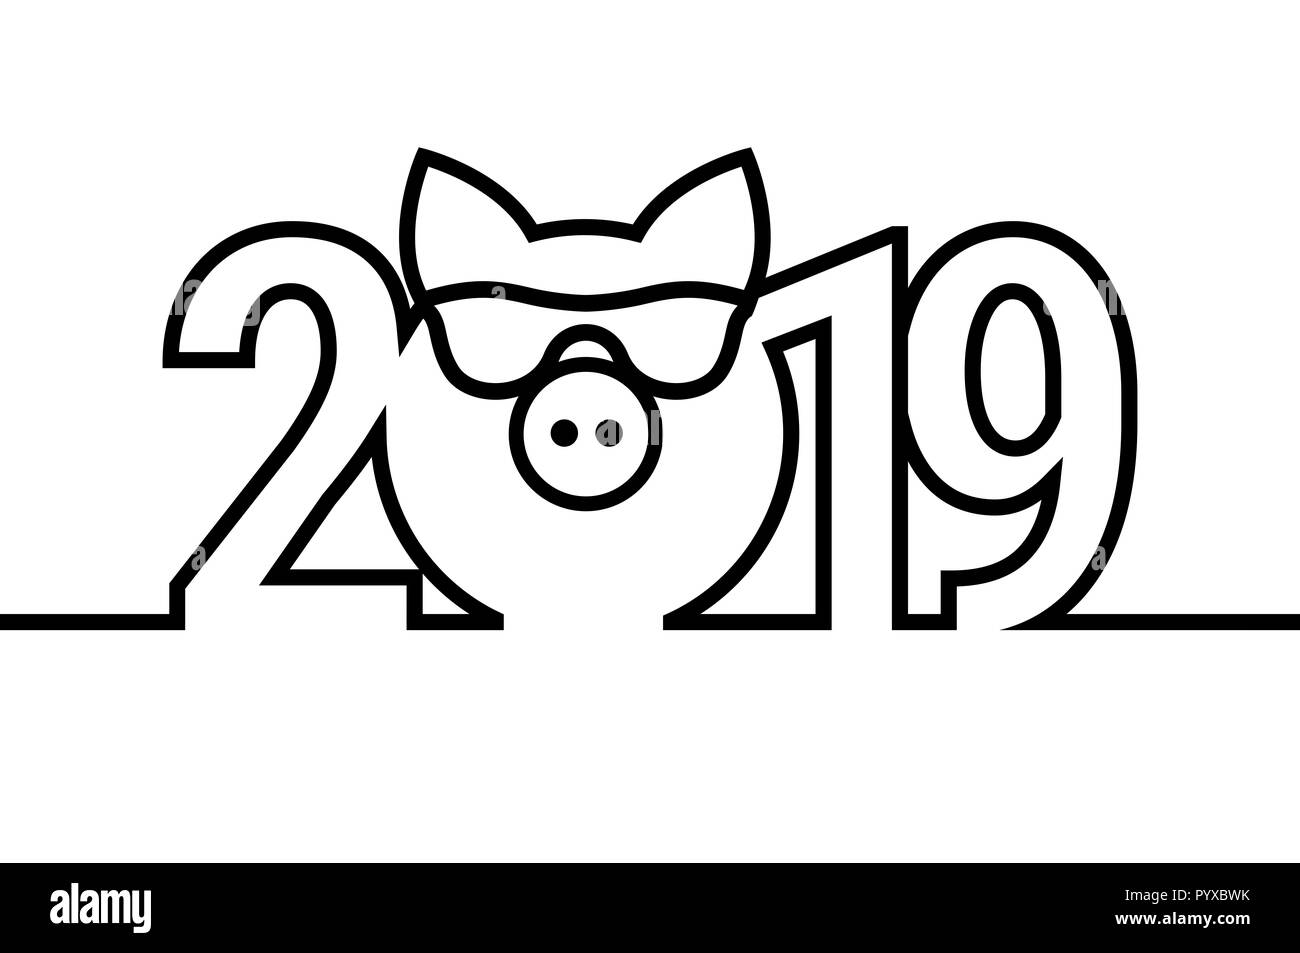 Pig Year 2019 Black and White Emblem. Symbol. Merry Christmas and Happy New Year Design Elements. Resource for Creating Postcards, Calendars or Poster - Stock Image